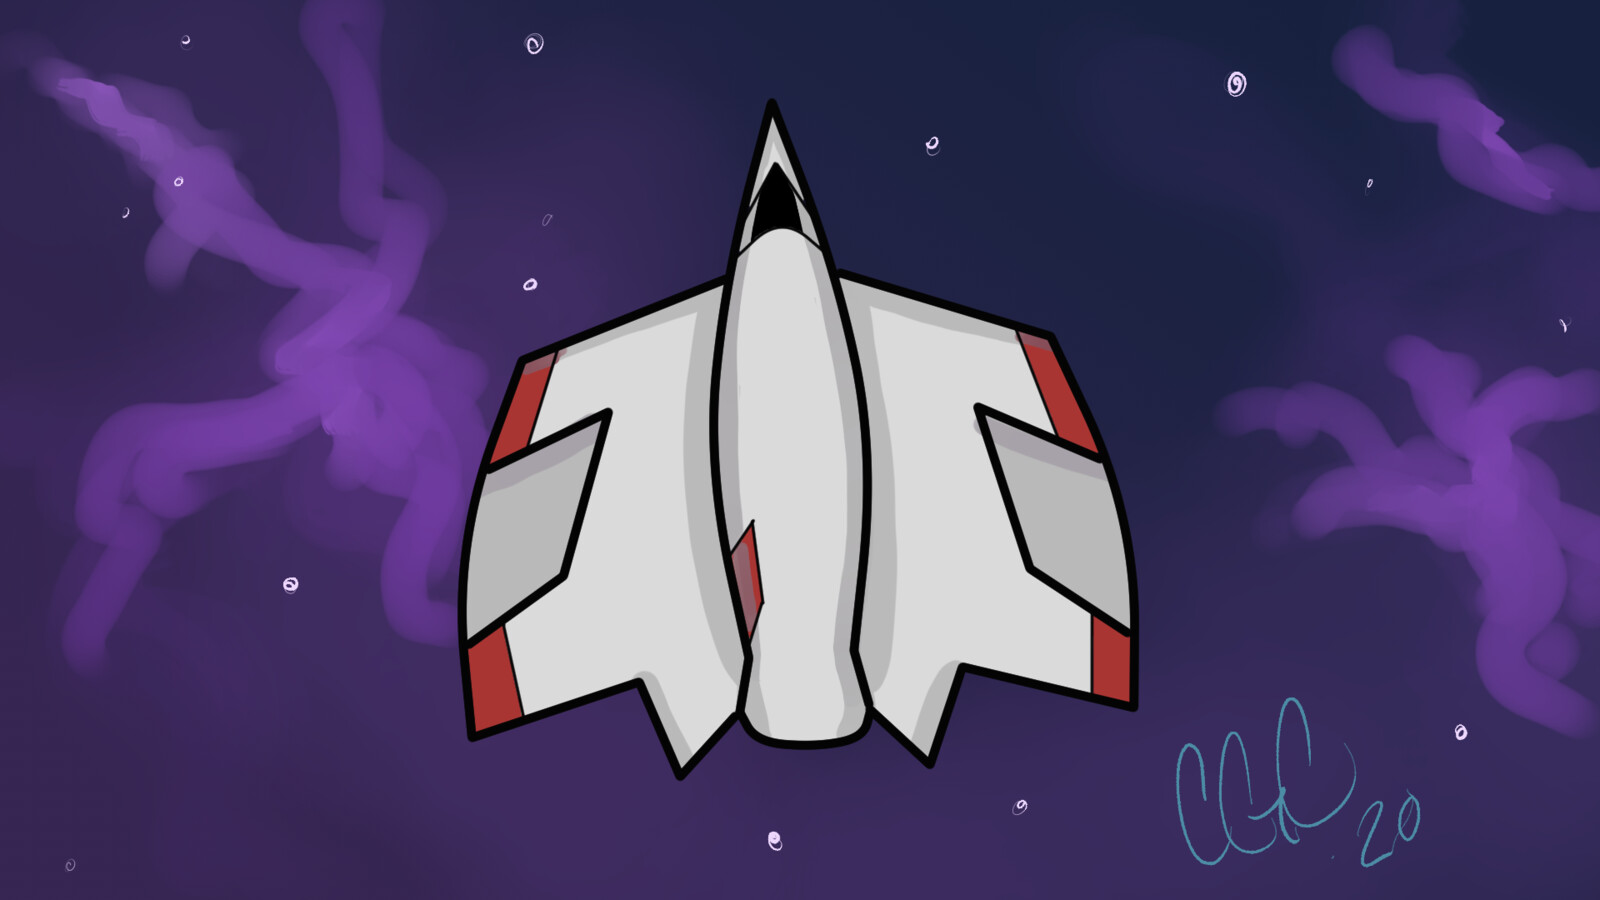 Space Ship for a 2D game